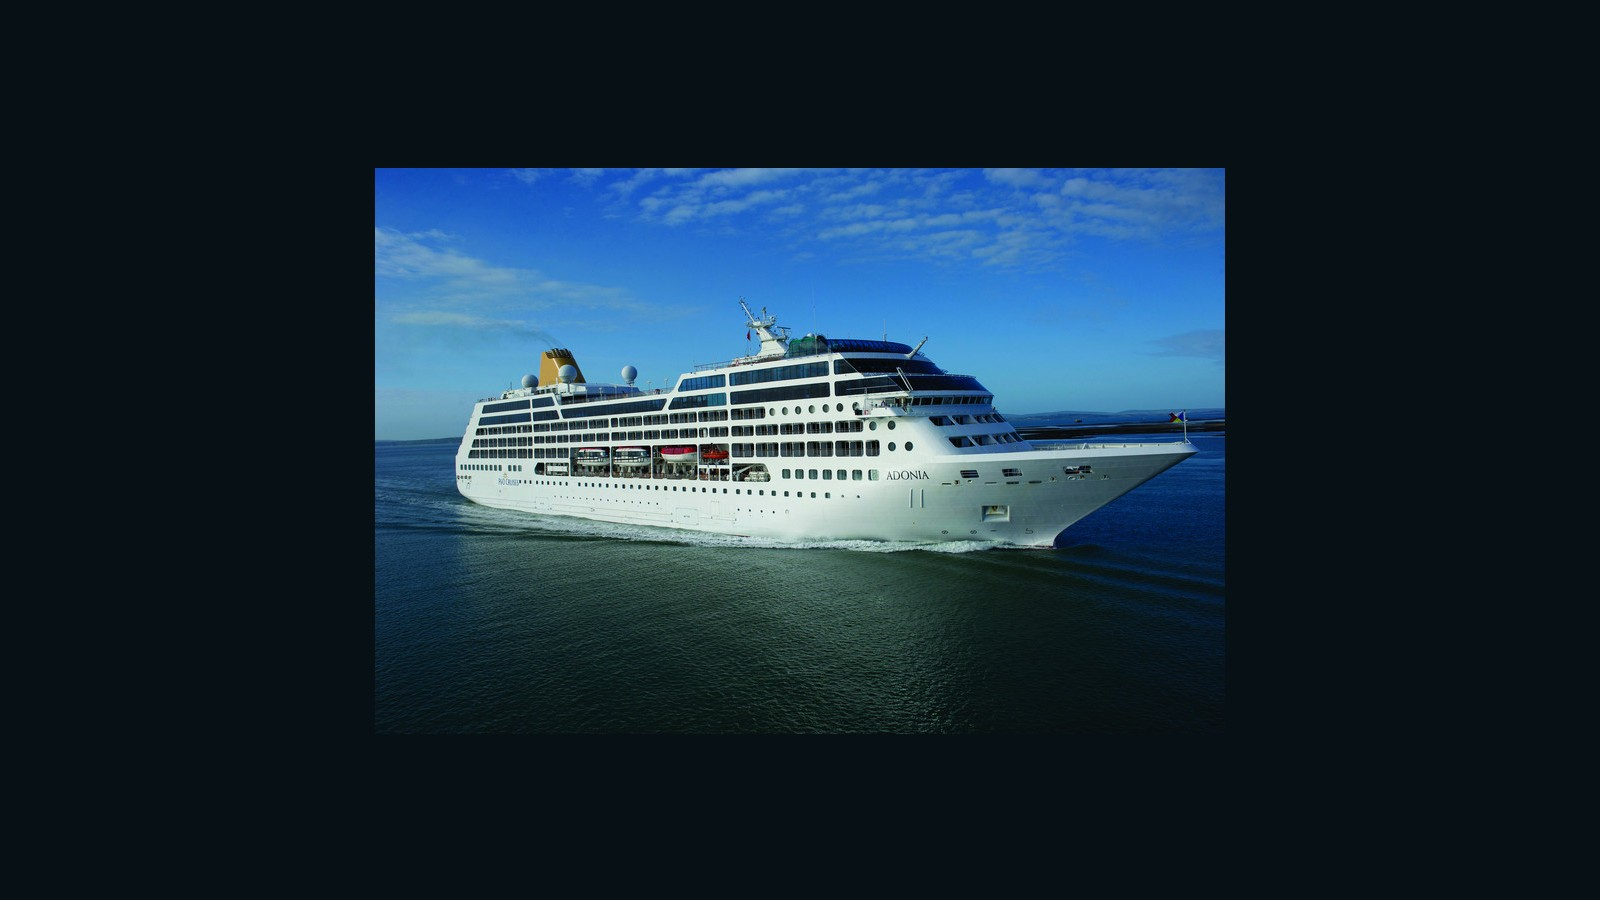 cruise ship dating Book an odessa cruise with cunard and discover the stunning landscapes of the black sea  before returning to the ship,  boasting icons dating from the .